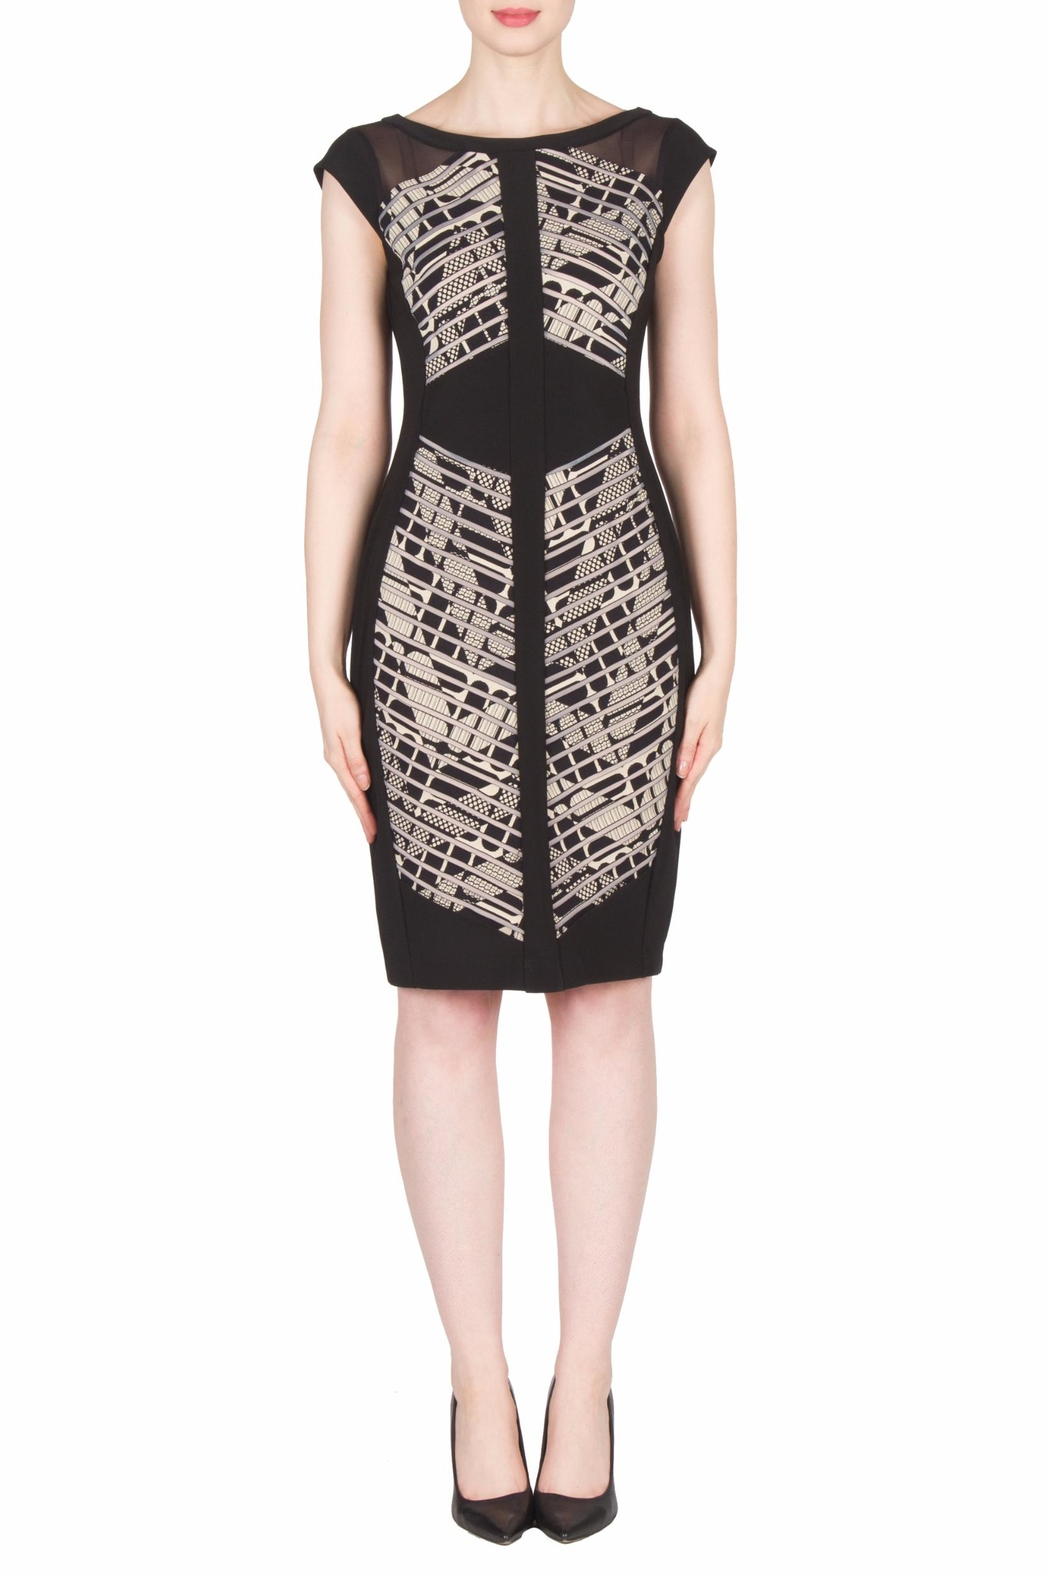 Joseph Ribkoff Samantha Dress - Main Image